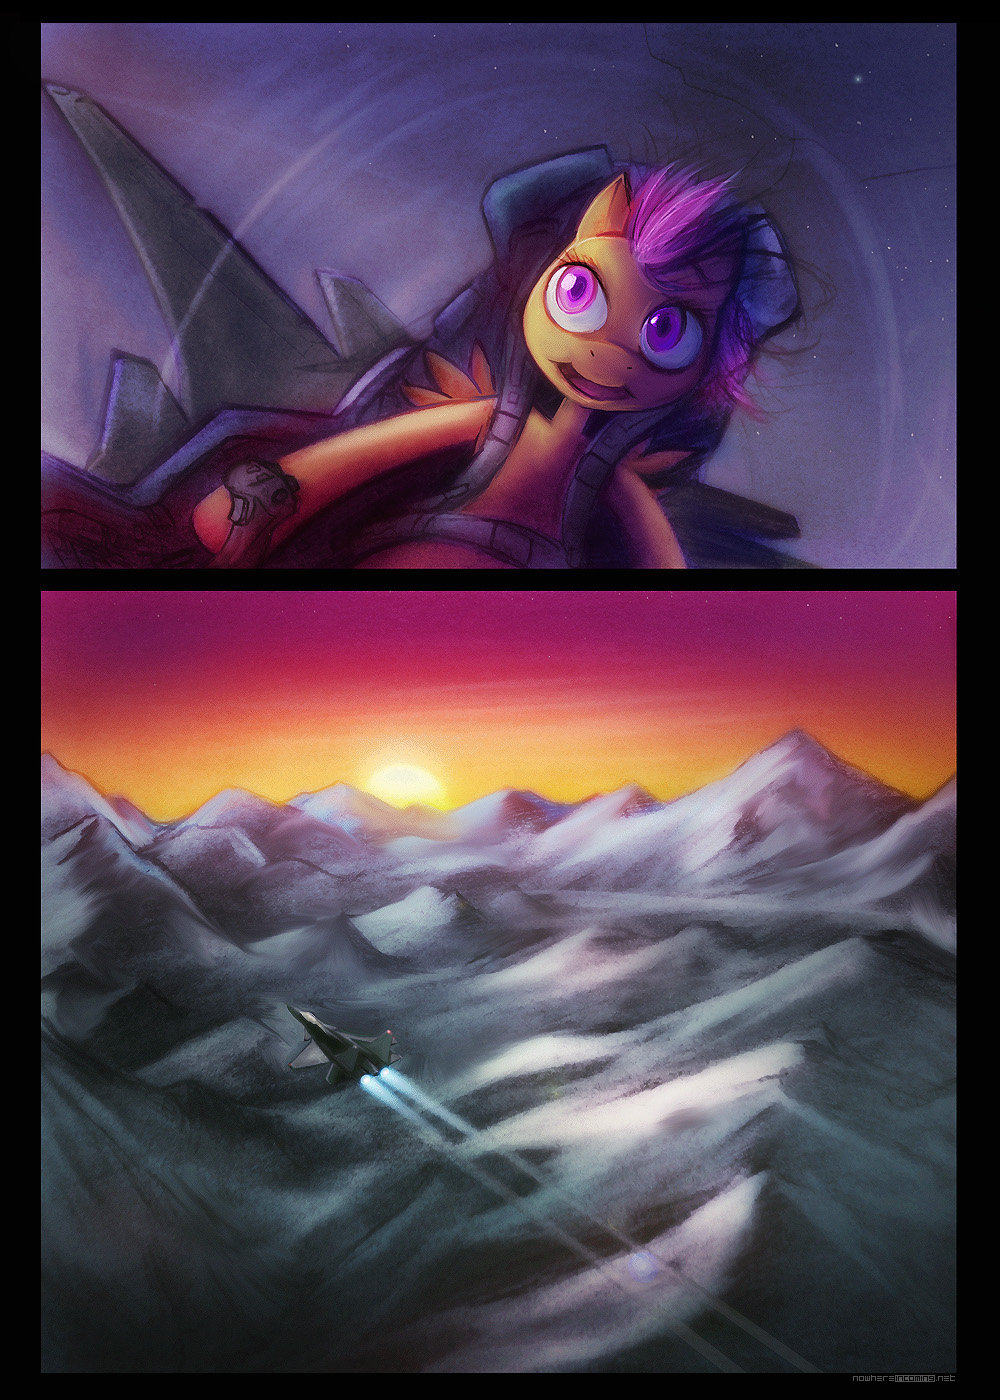 Mlp Fim Hands Thread The Fifth Page 100 Spacebattles Forums Последние твиты от scootaloo (@mlp_scoots). mlp fim hands thread the fifth